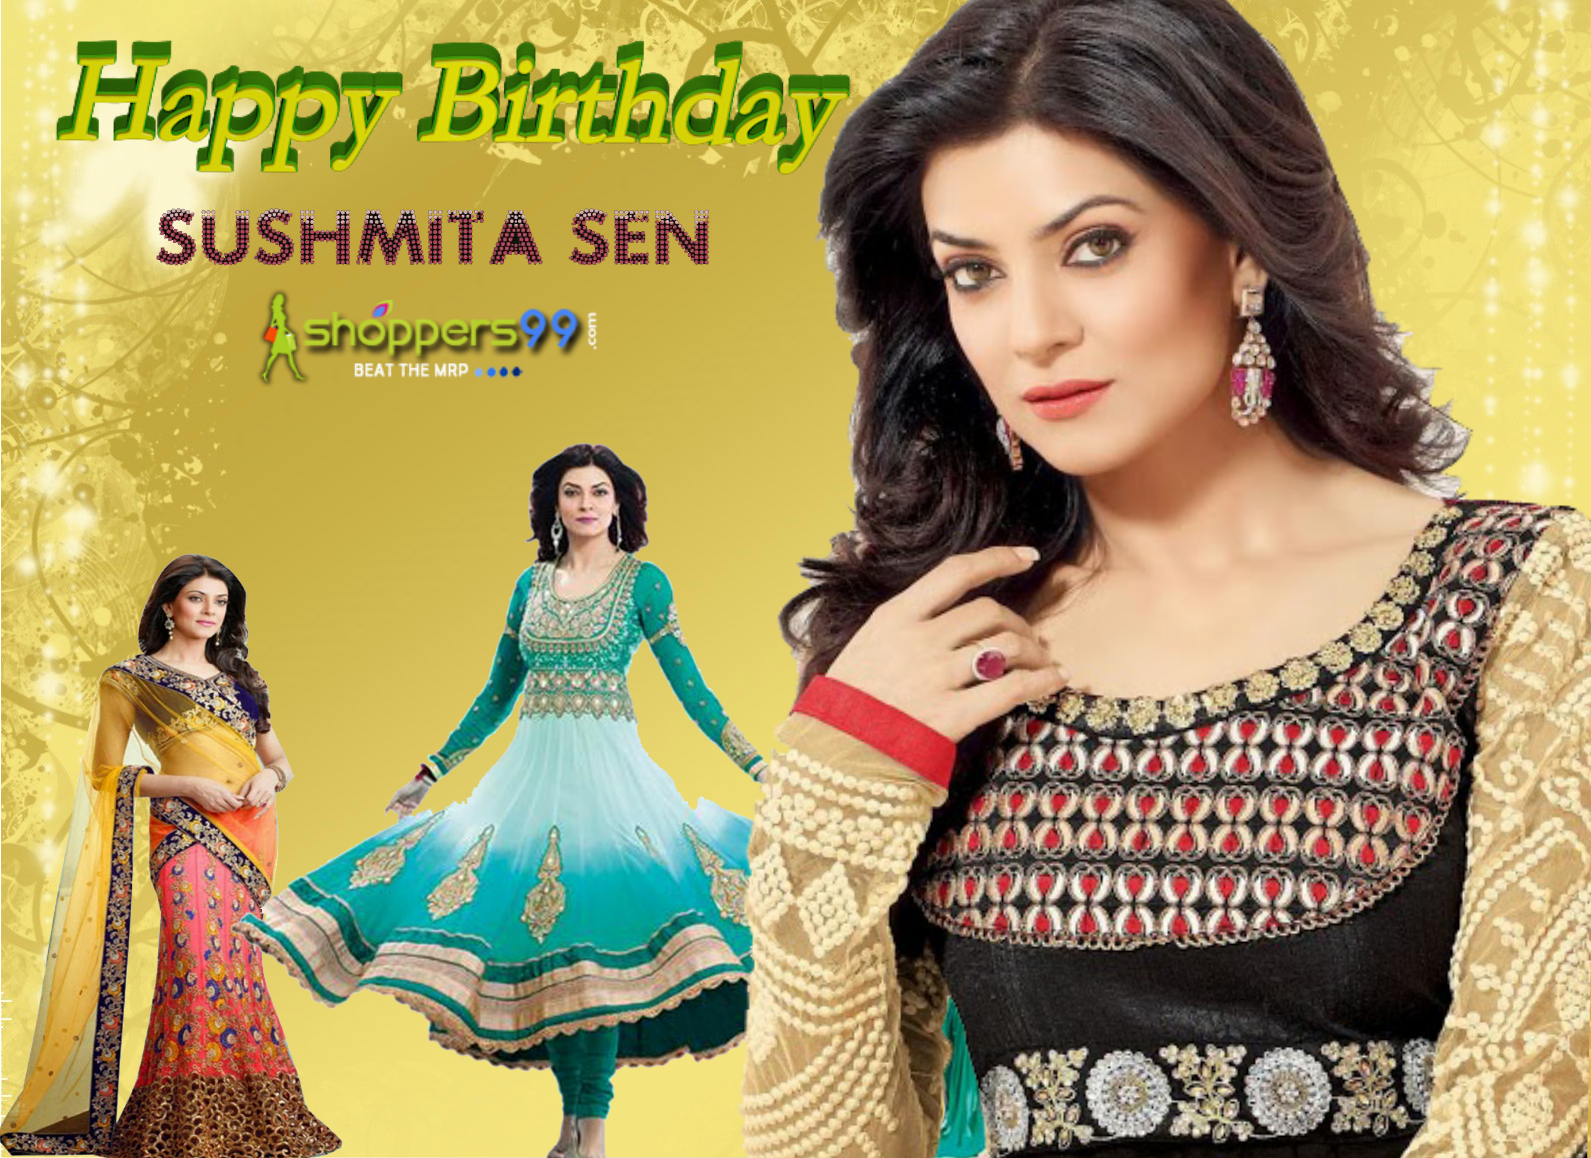 "Today is the Birthday of one of the #Bollywood beauty ""#SushmitaSen.  Sushmita Sen won the title of Femina Miss India in 1994  and She represented India at the 1994 Miss Universe Pageant, held in Manila, Philippines and won there.  Shopper99 wish her many-many happy returns of the day with best wishes.  #HappyBirthdaySushmitaSen"